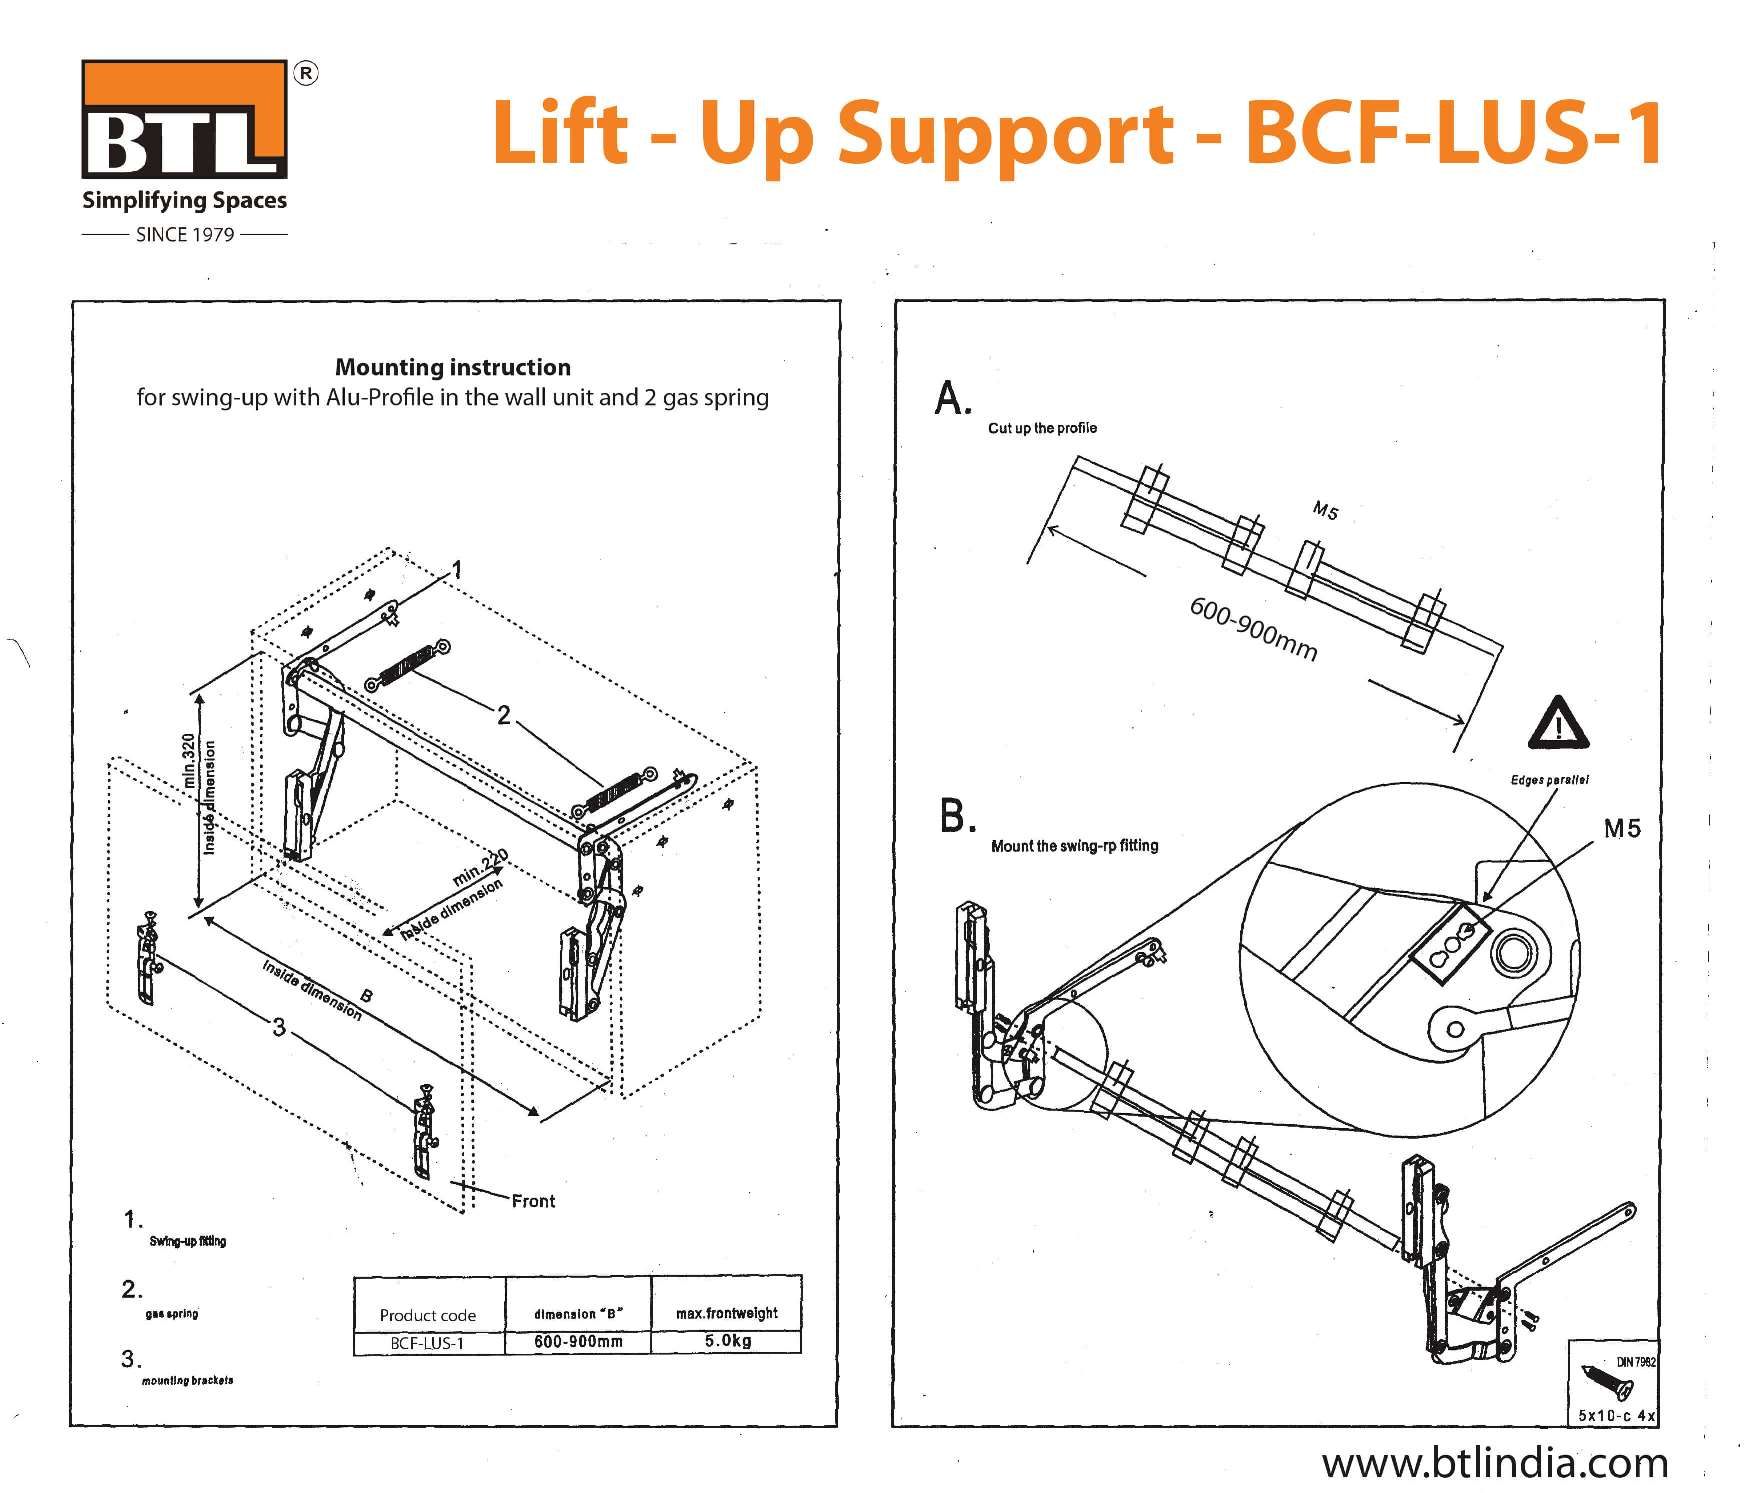 BTL Lift - Up Support - BCF-LUS-1 - Installation Instruction & other Product Details